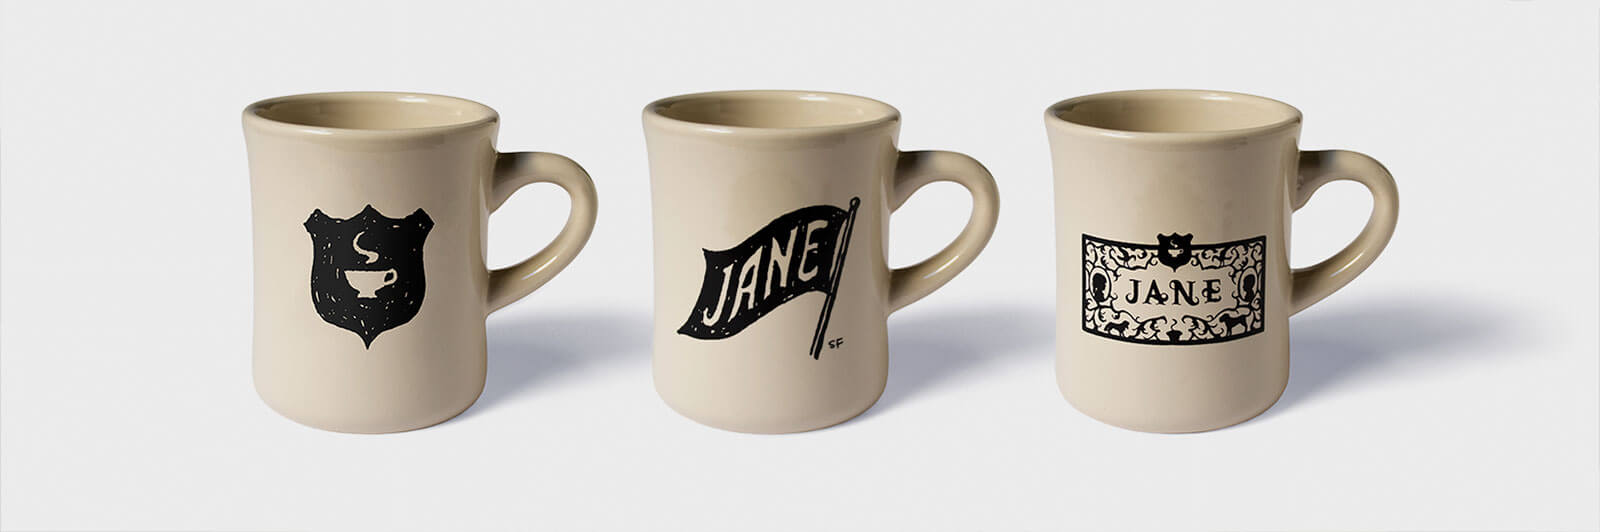 3 light tan mugs with black logos